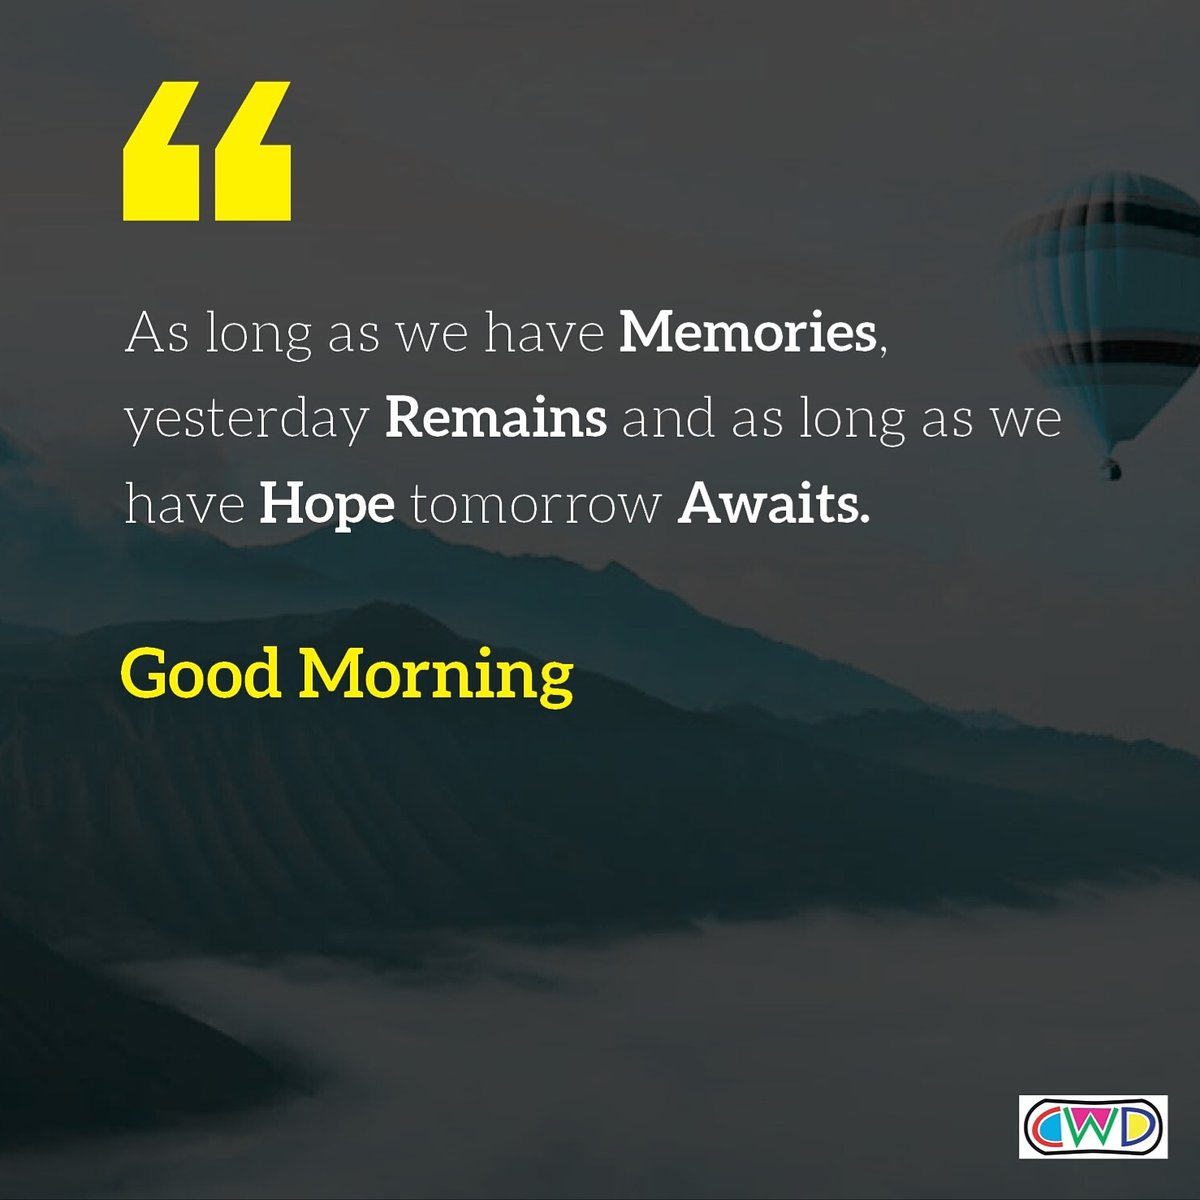 As long as we have Memories, yesterday Remains and as long as we have Hope tomorrow Awaits. #Goodmorning #MotivationalQuotes